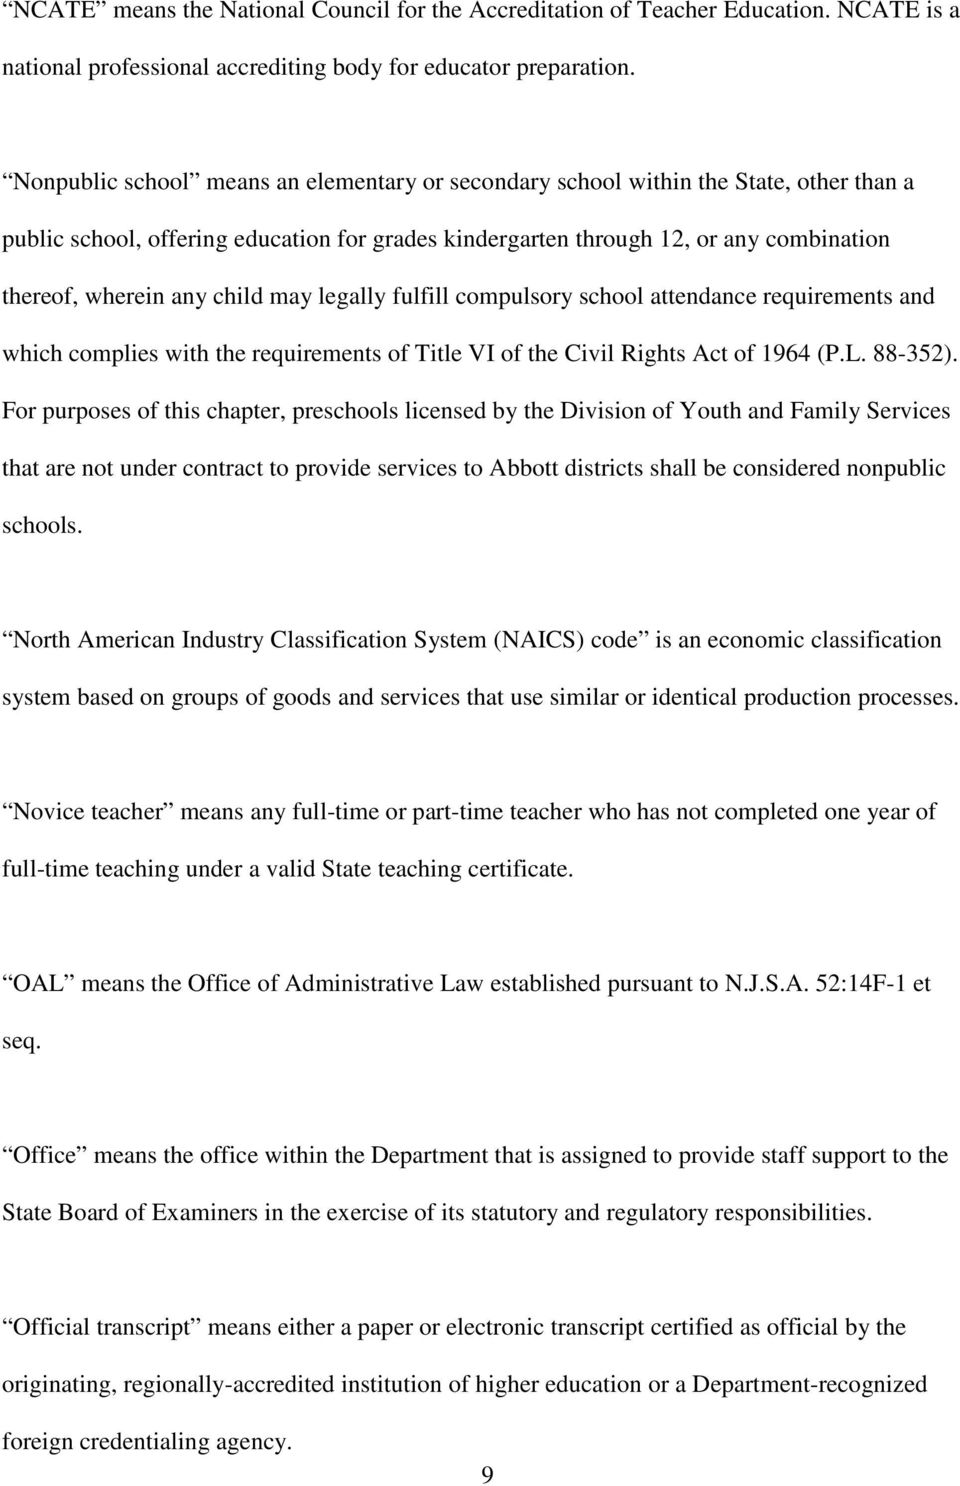 child may legally fulfill compulsory school attendance requirements and which complies with the requirements of Title VI of the Civil Rights Act of 1964 (P.L. 88-352).